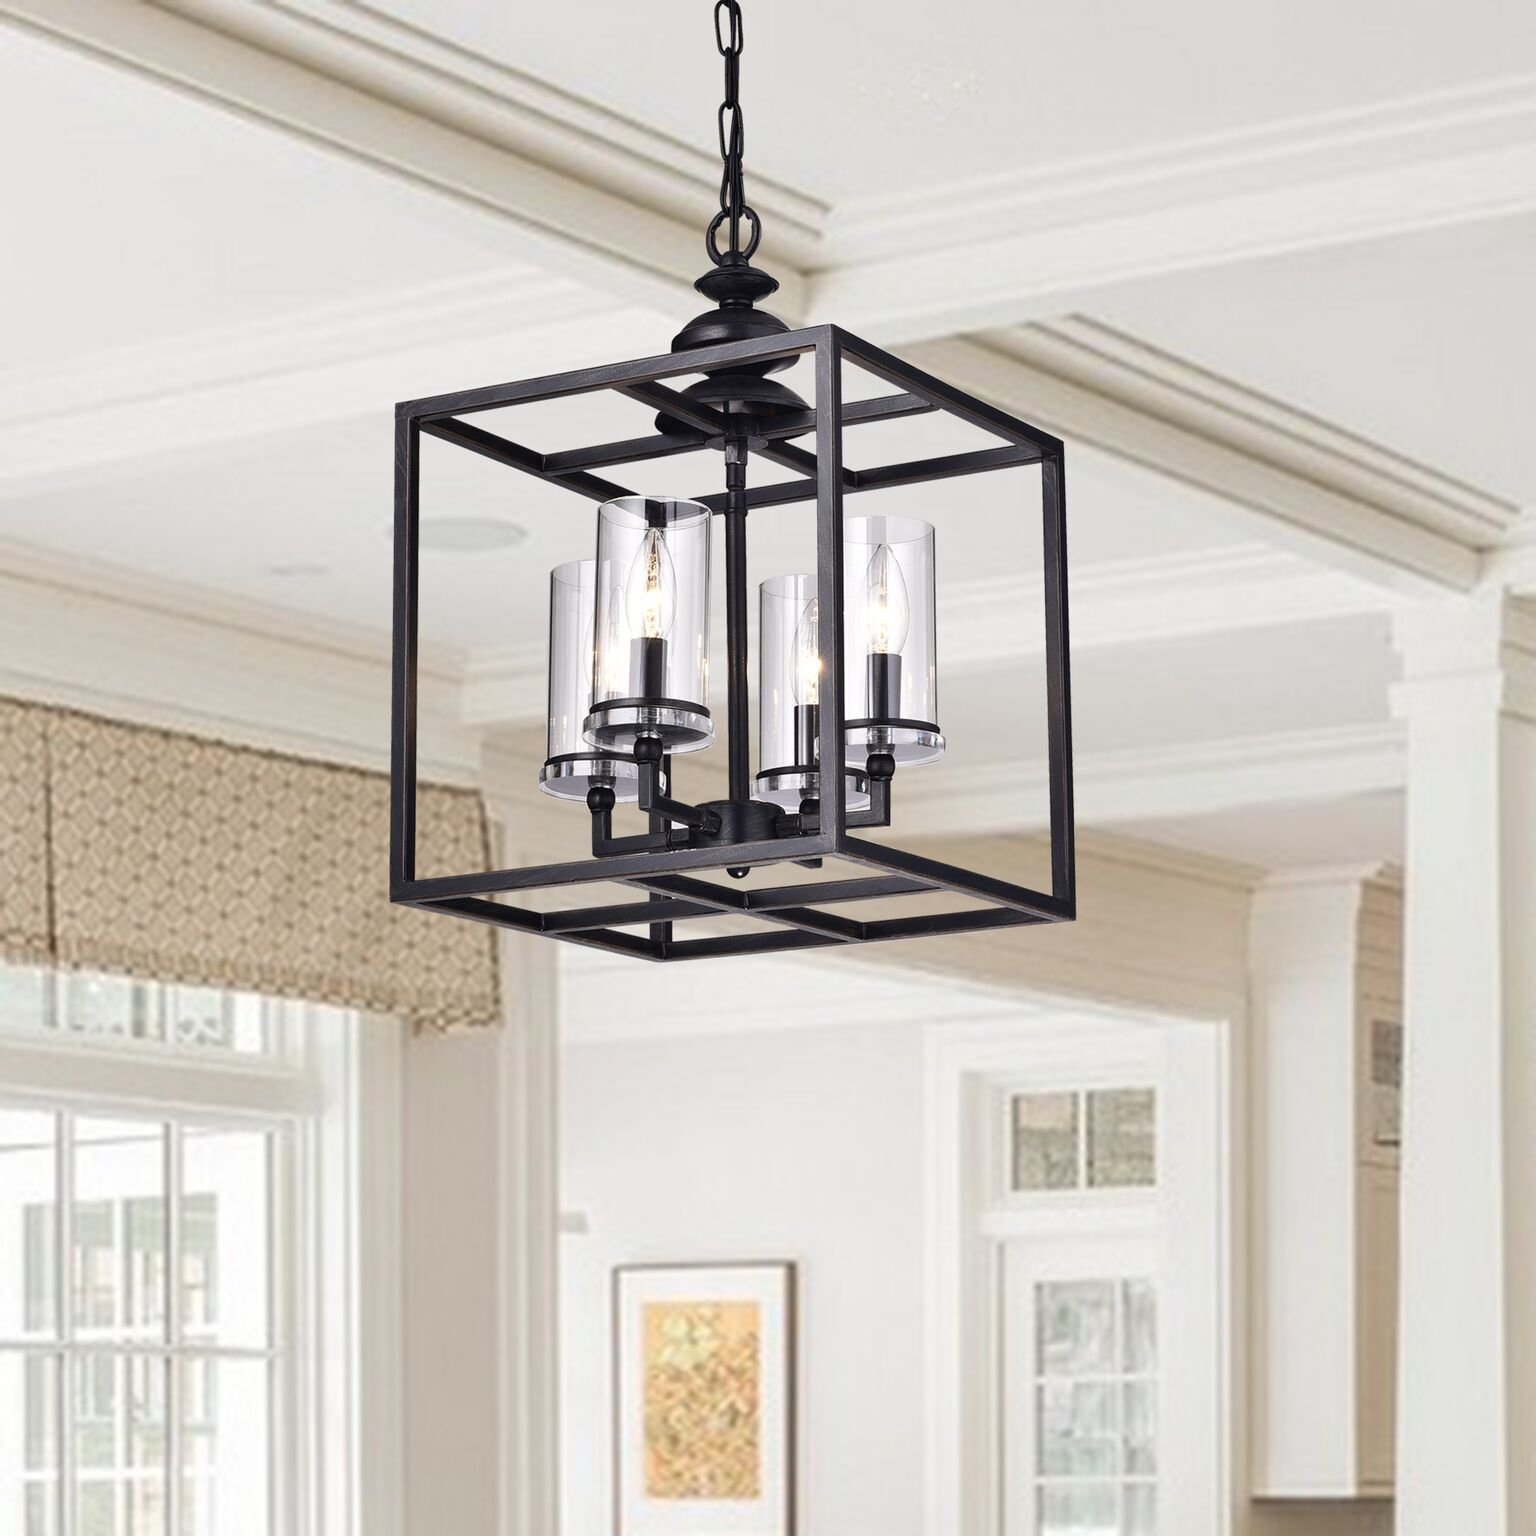 Cheverton 4 Light Square/rectangle Chandelier With Regard To Ellenton 4 Light Rectangle Chandeliers (View 4 of 30)